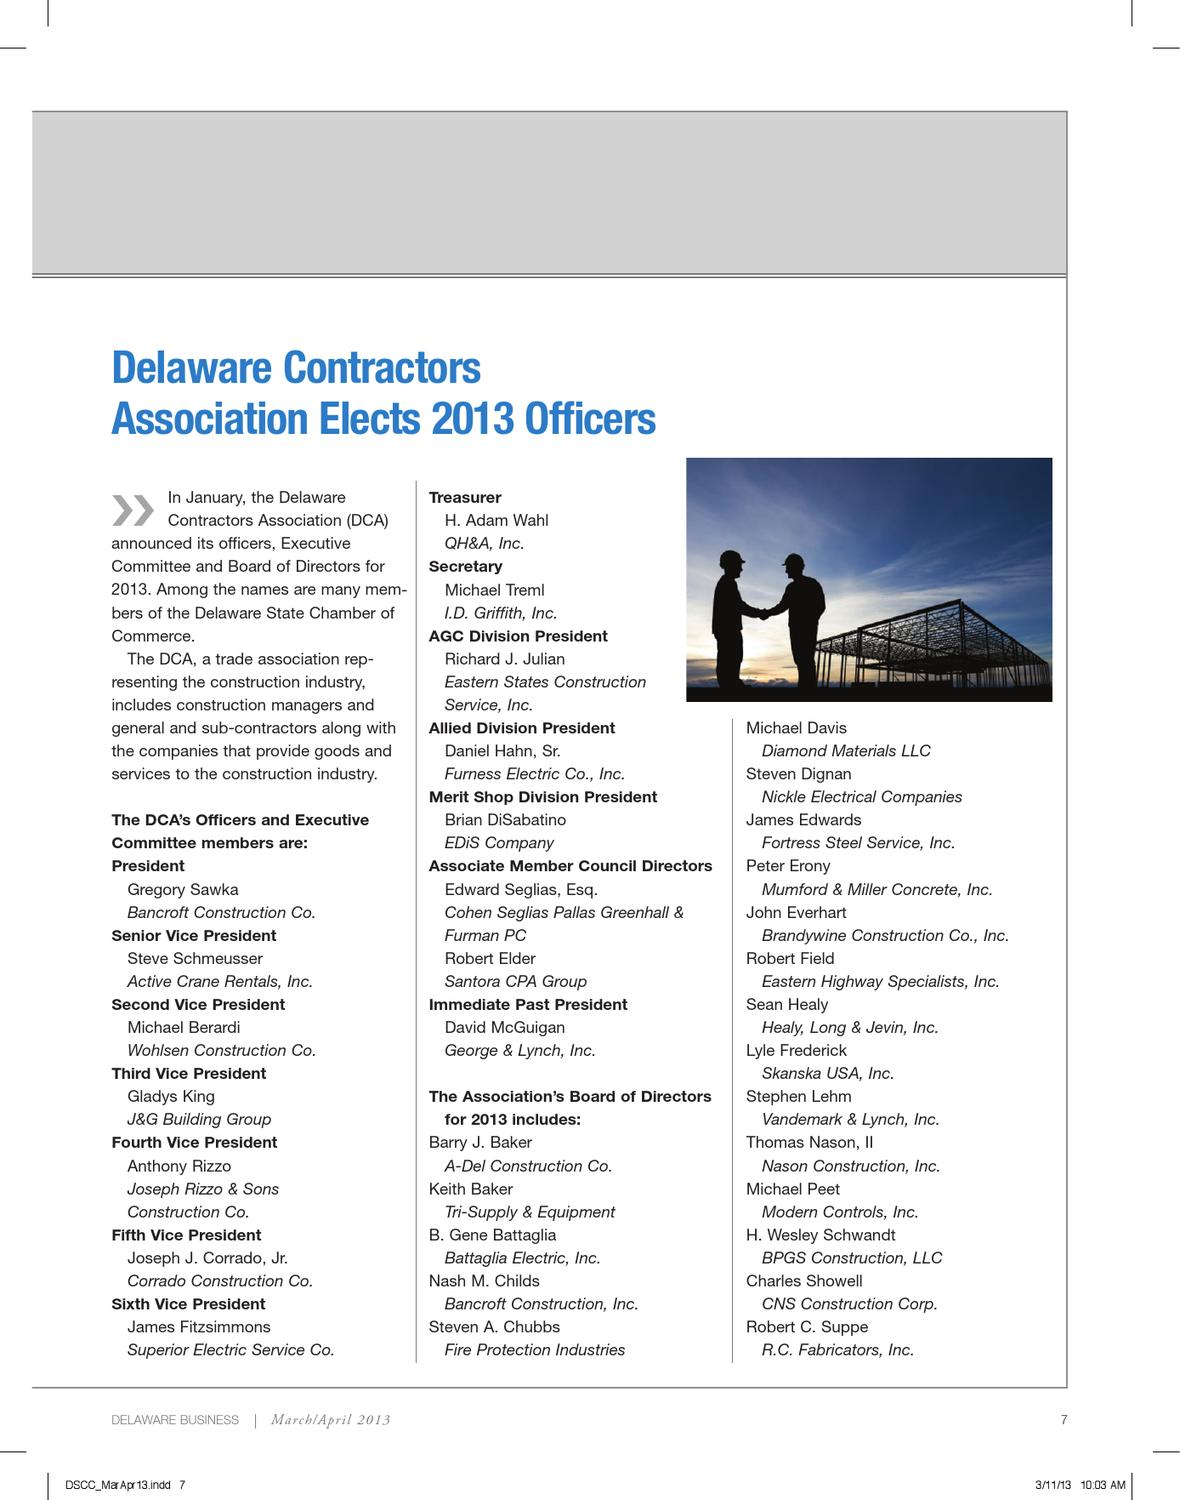 Delaware Business - March/April 2013 by Delaware State Chamber of